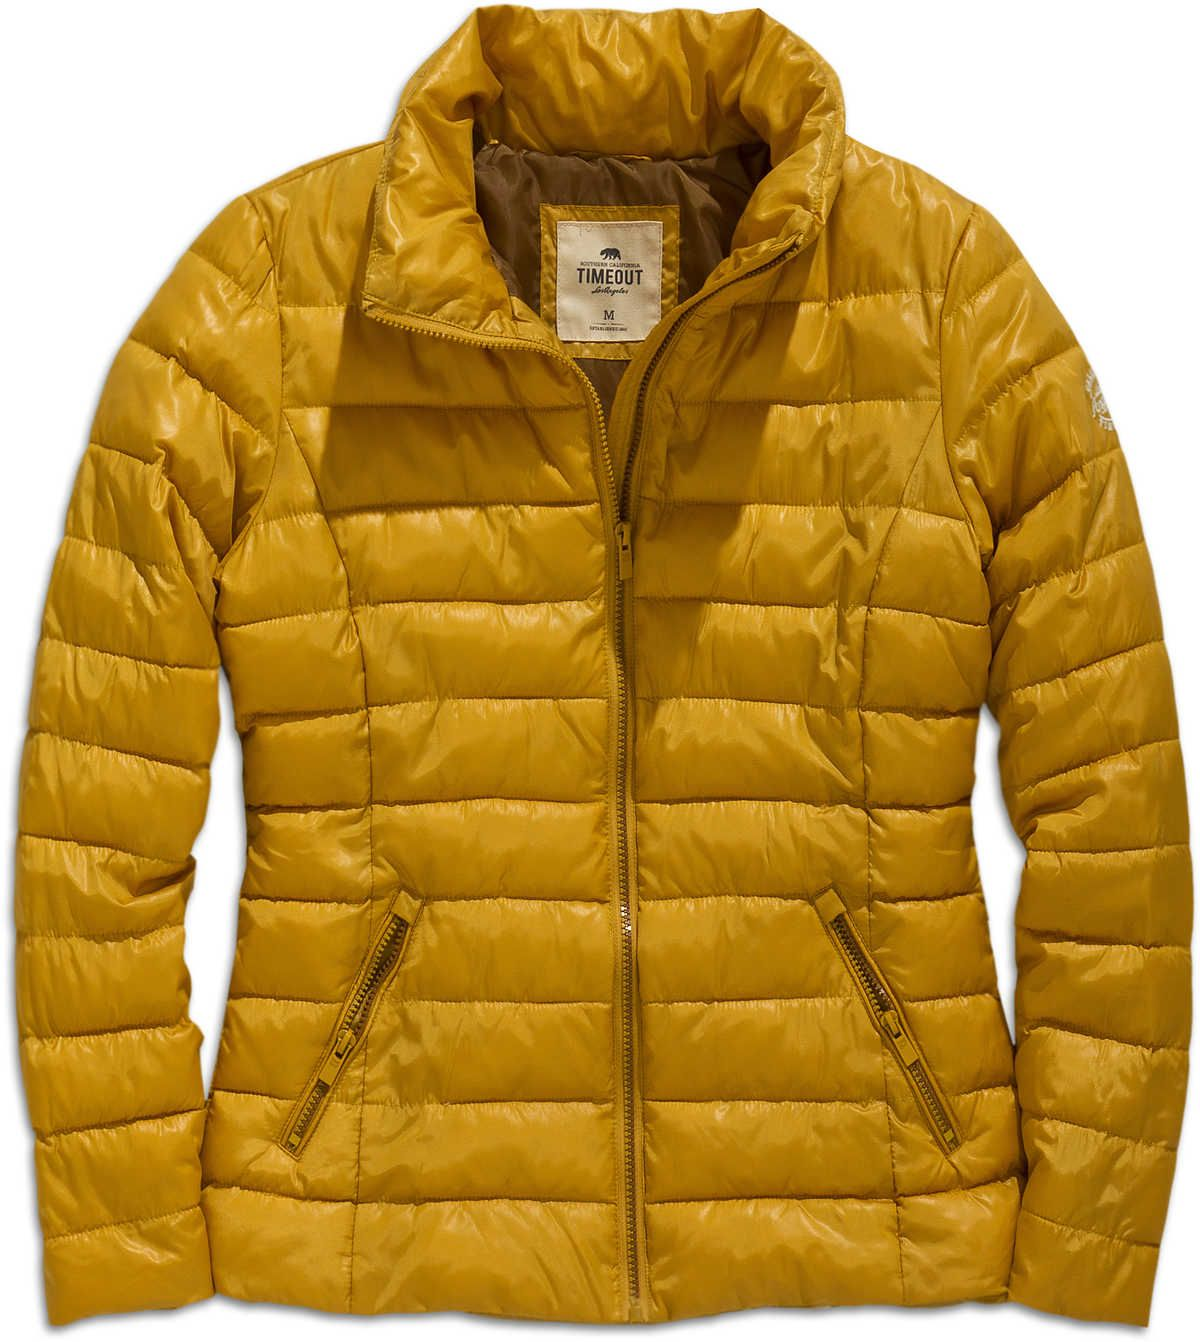 Timeout California Heritage Collection Feel Alive Women S Puffer Jackets Jackets Puffer [ 1342 x 1200 Pixel ]